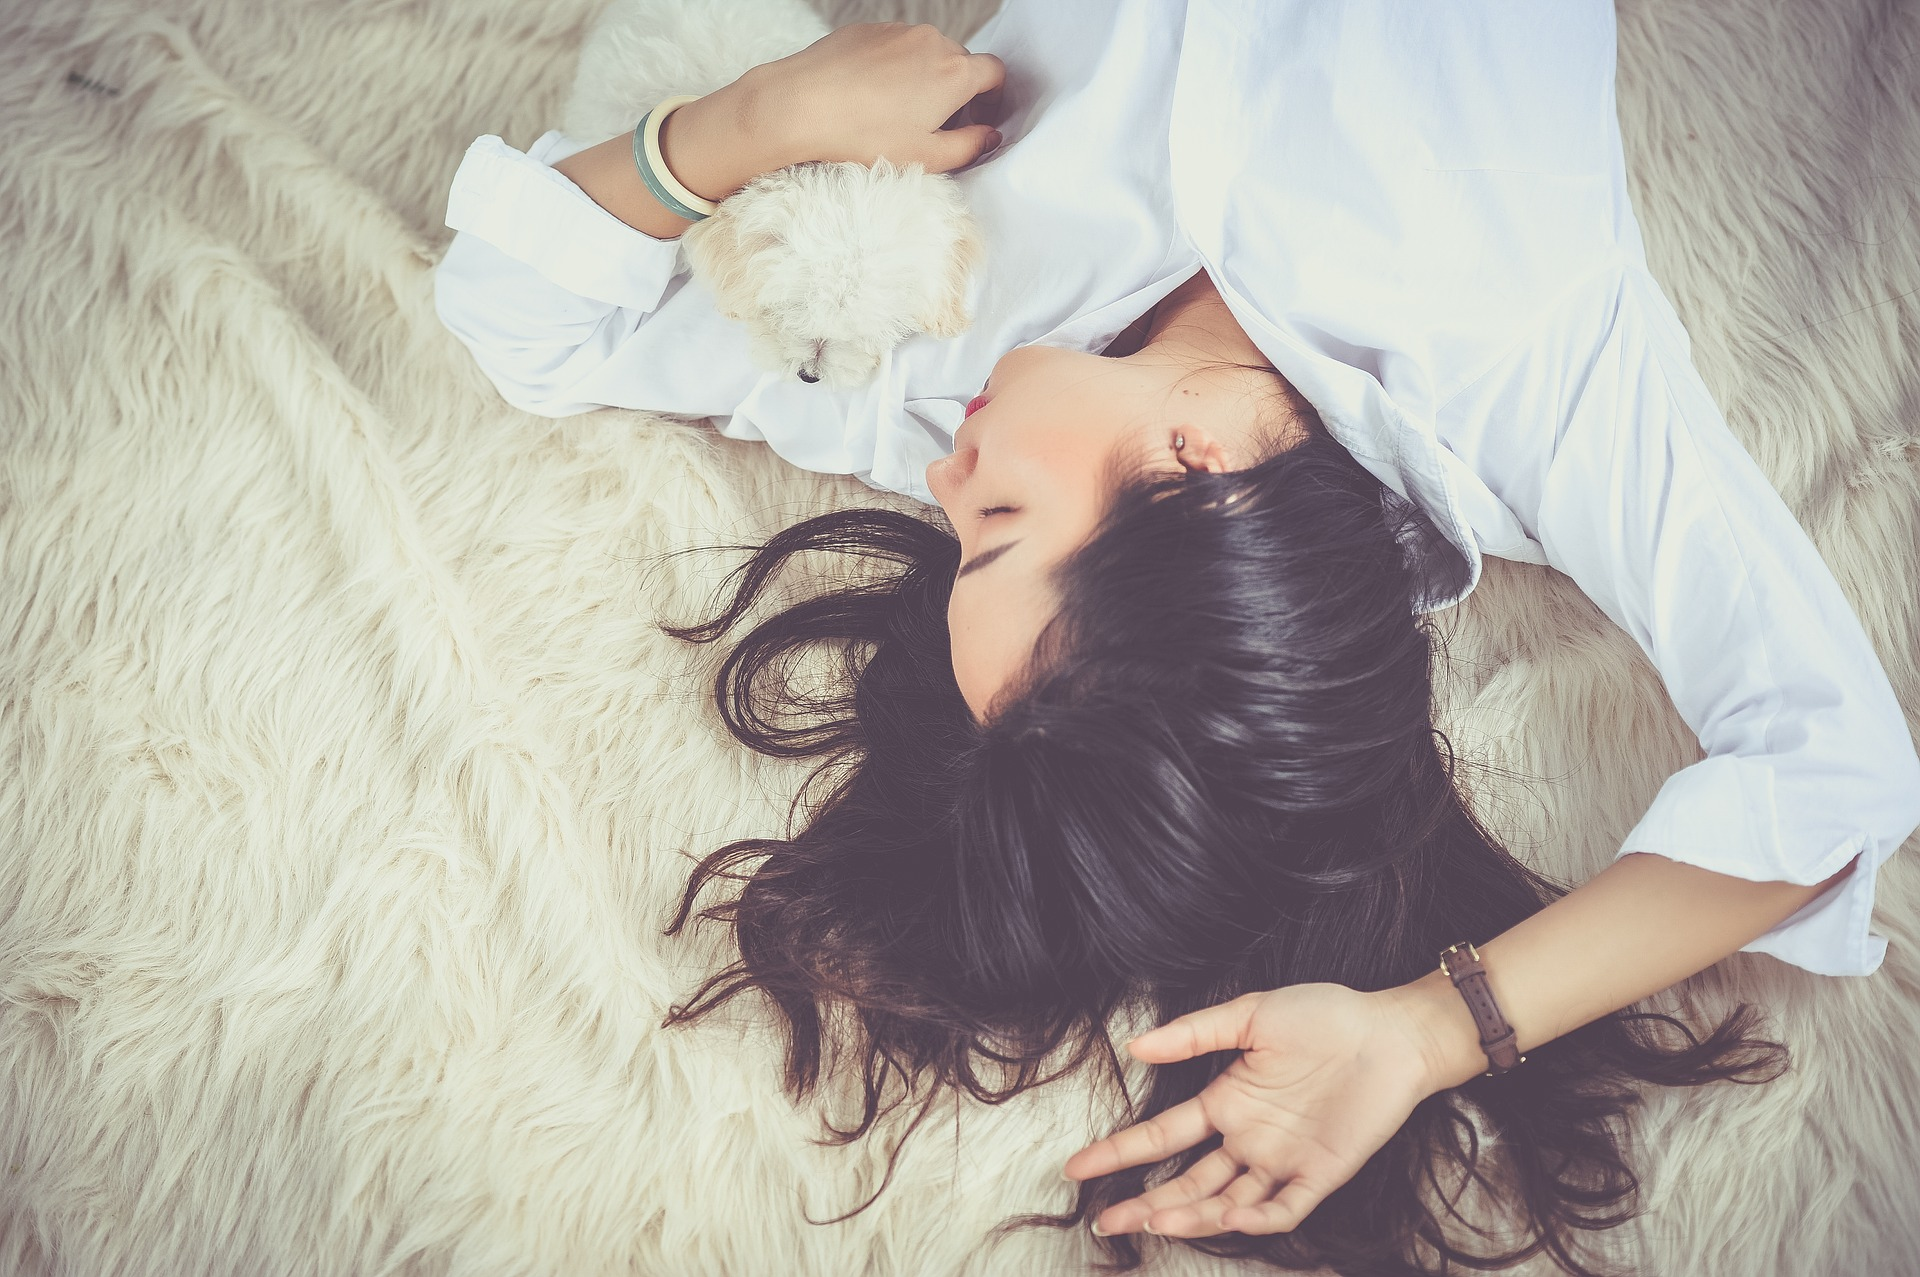 Skipping sleep can affect you in ways you wouldn't expect